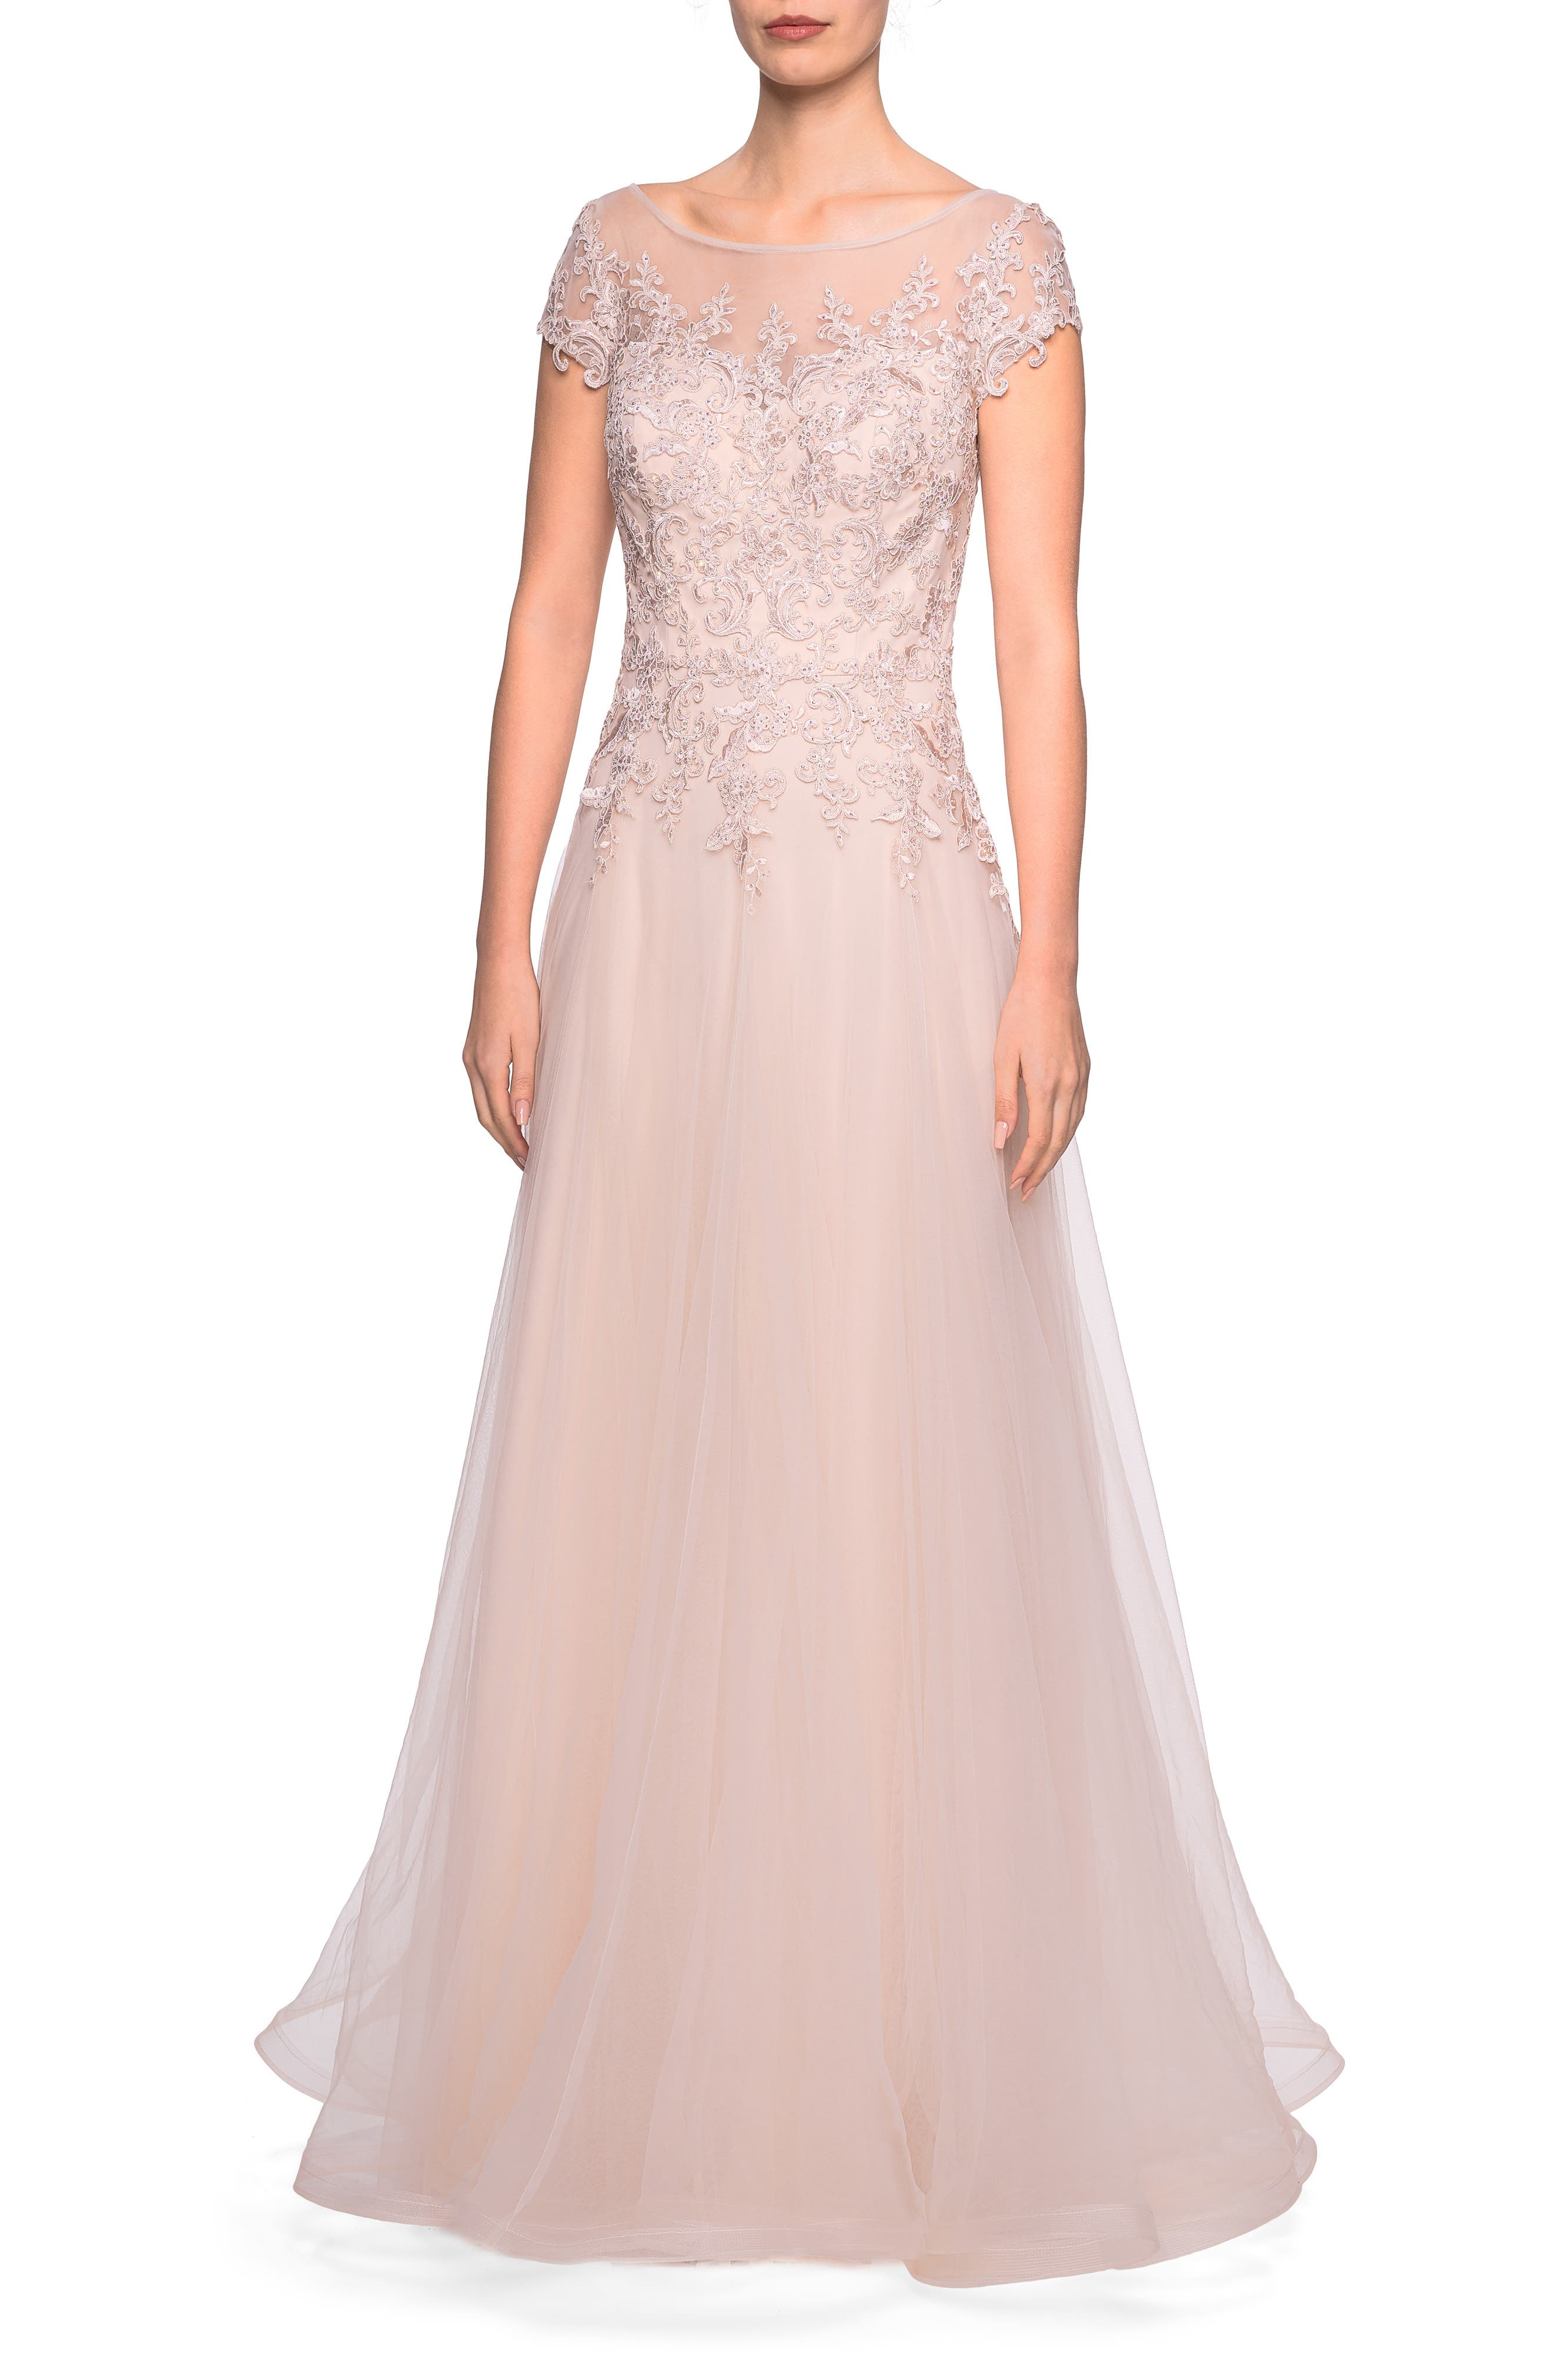 La Femme Tulle A-Line Evening Dress, Pink